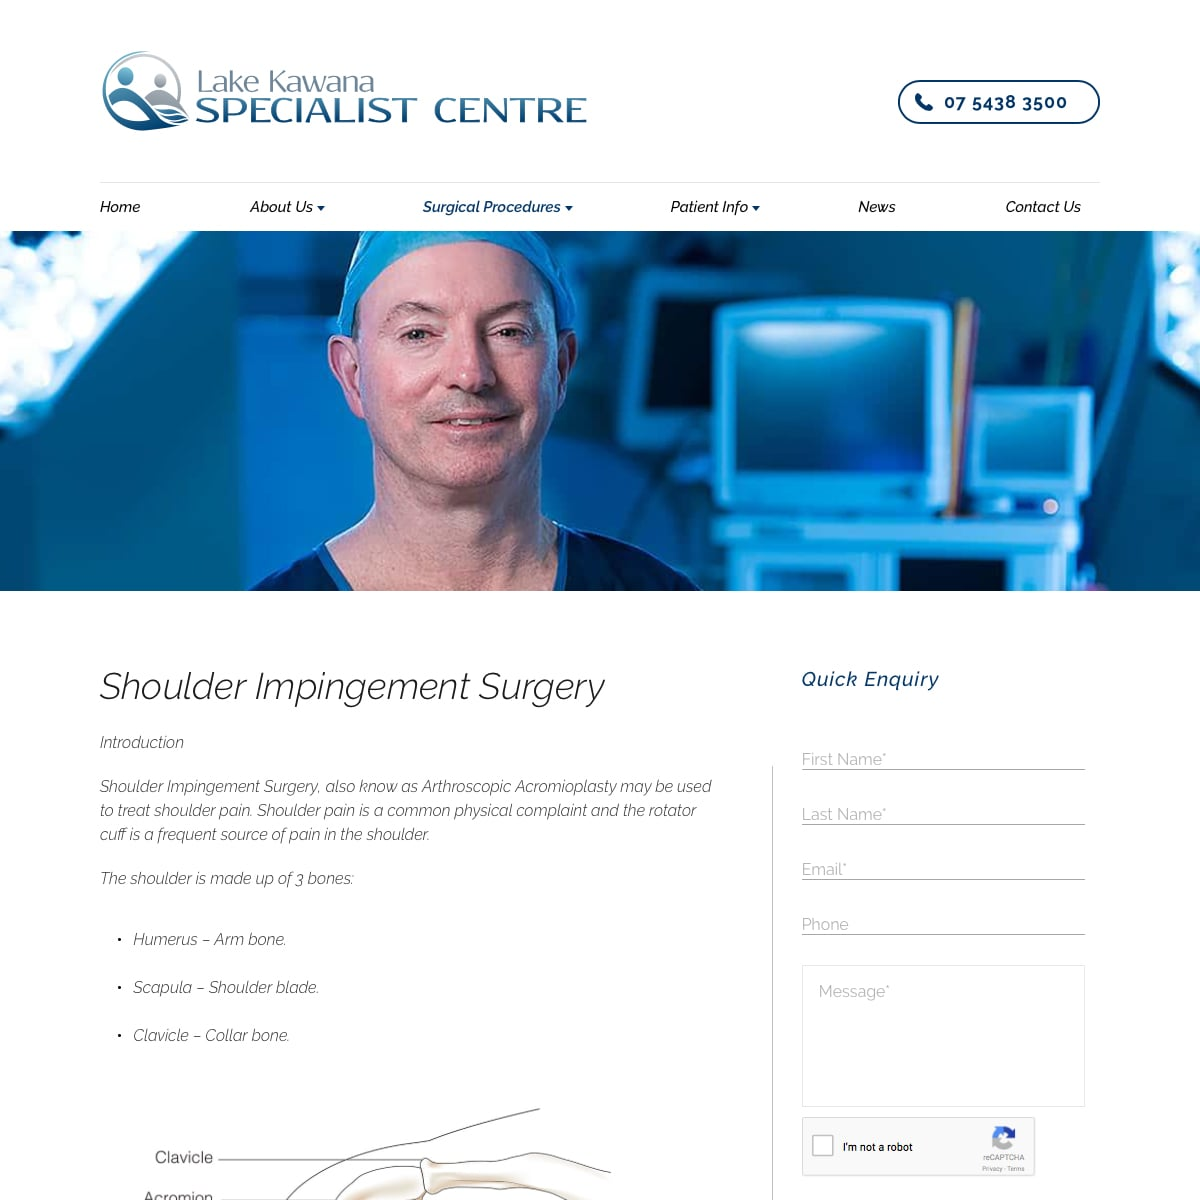 Lake Kawana Specialist Centre - Shoulder Impingement Surgery